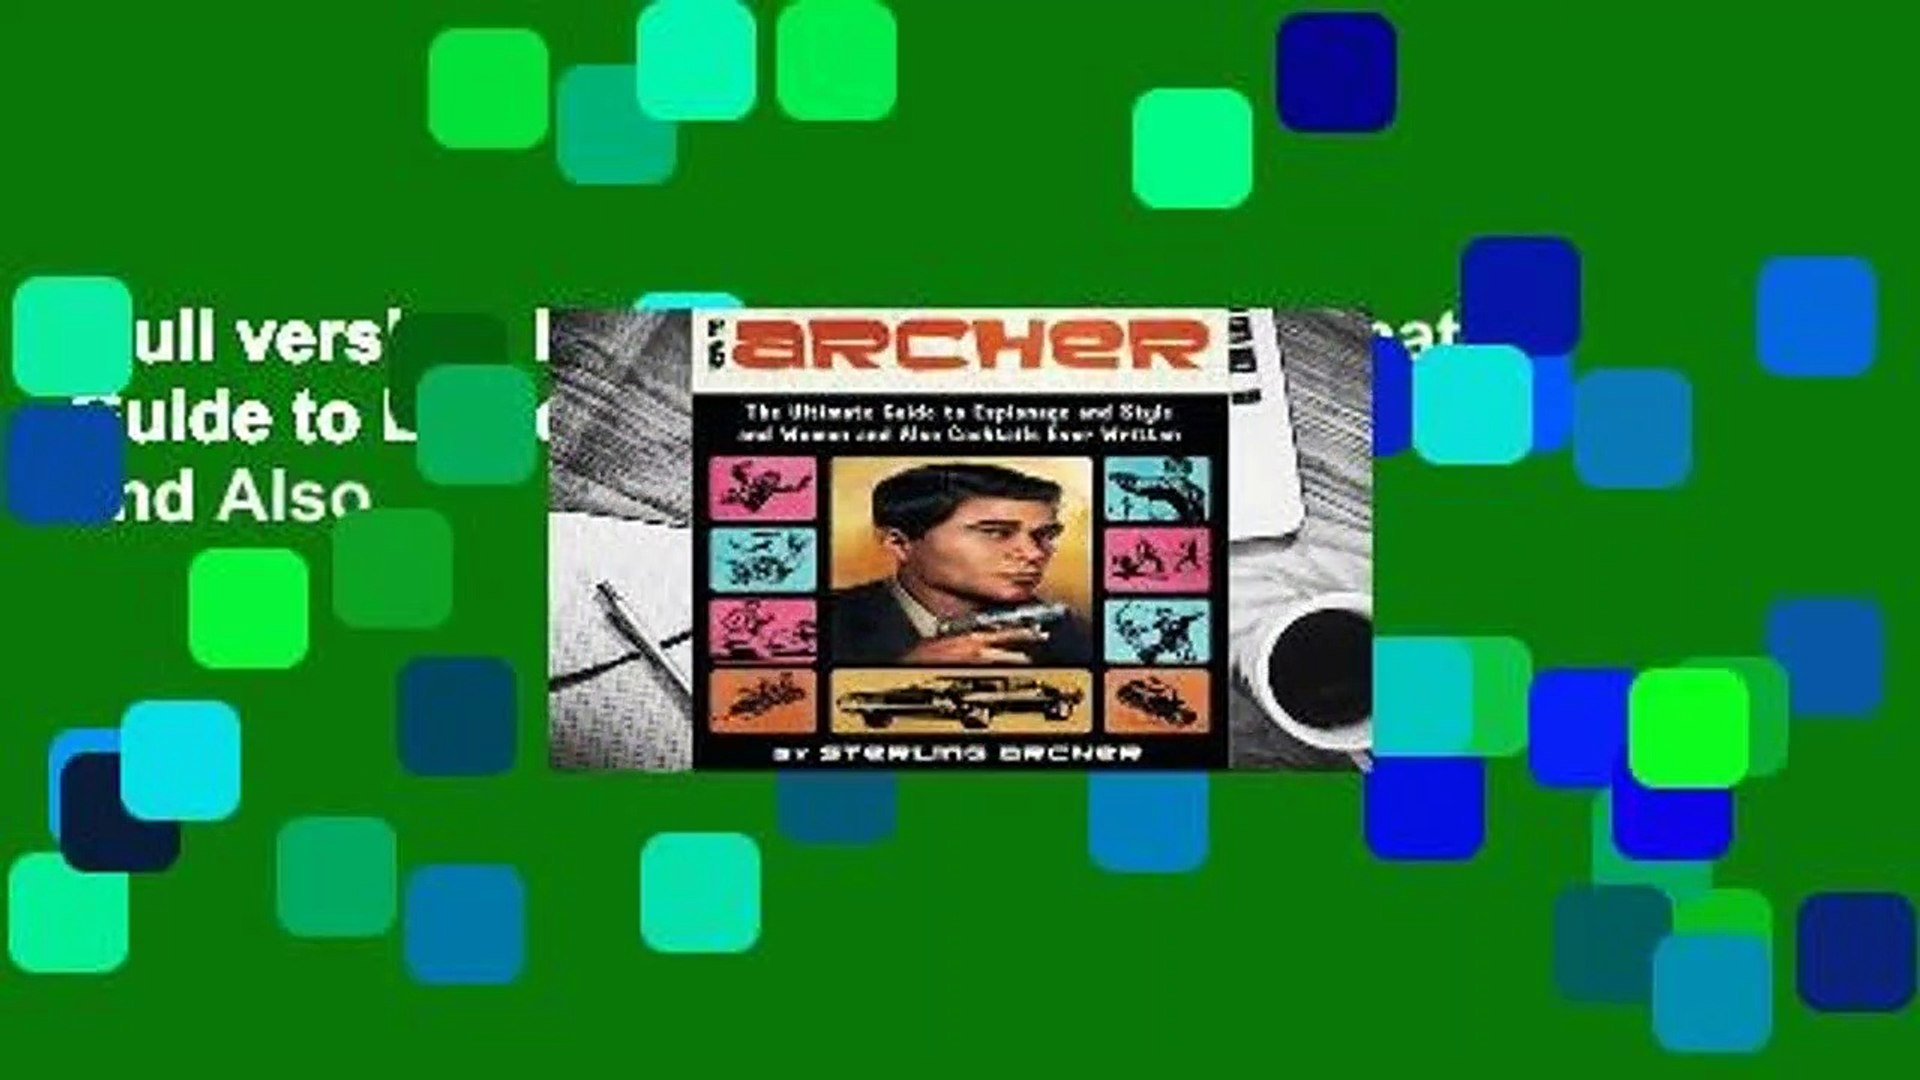 Full version  How to Archer: The Ultimate Guide to Espionage and Style and Women and Also